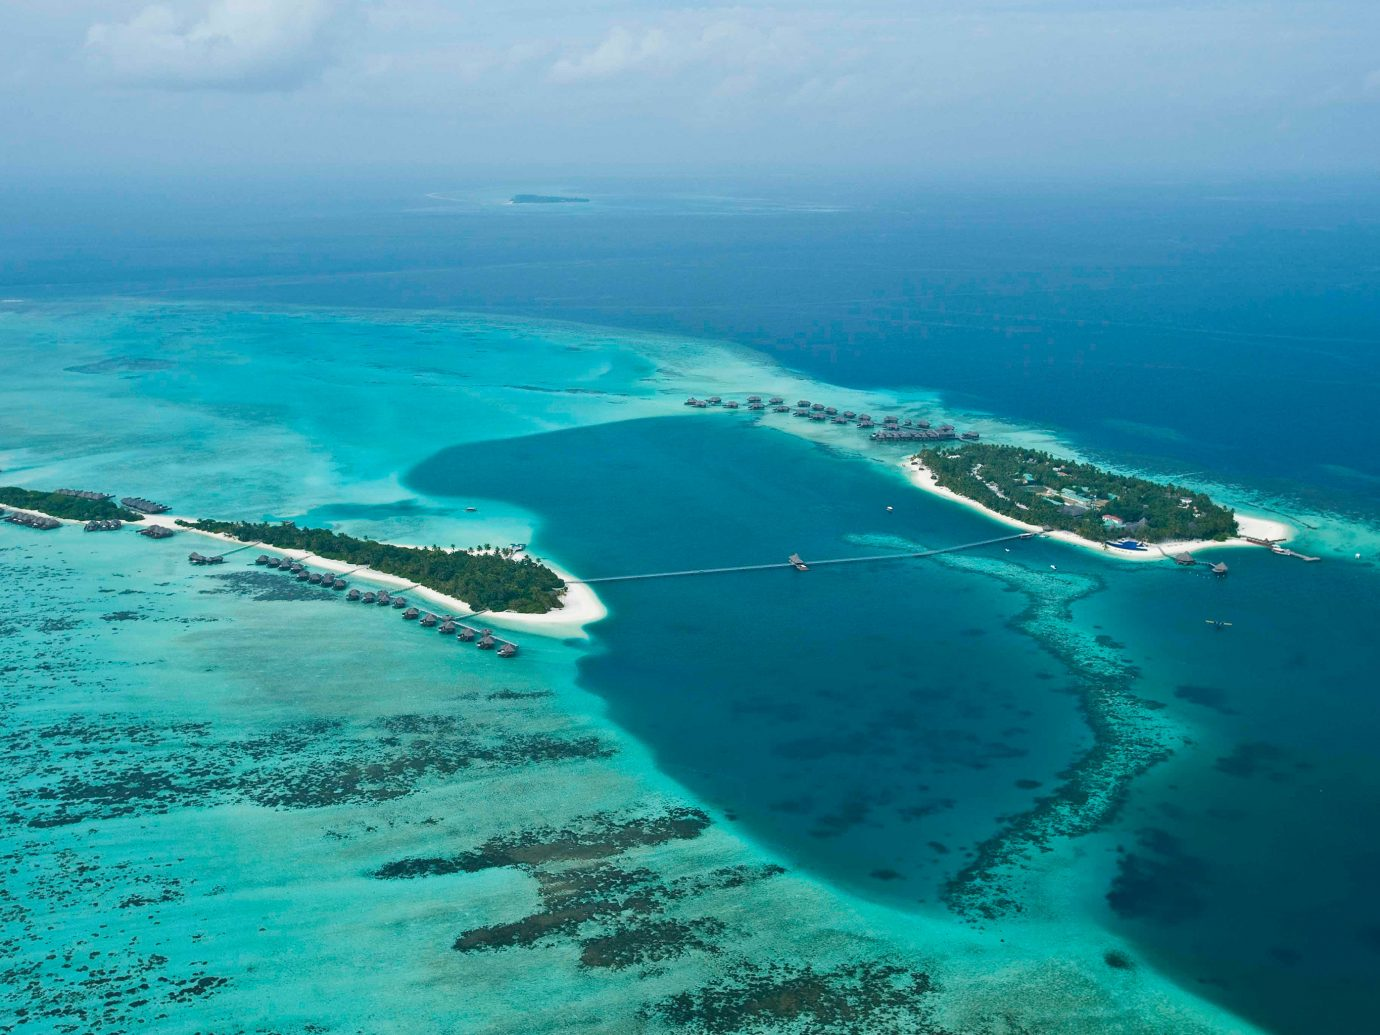 Hotels Ocean water sky outdoor geographical feature landform reef Nature Sea archipelago Coast islet Island blue cape wind wave atoll bay arctic ocean day